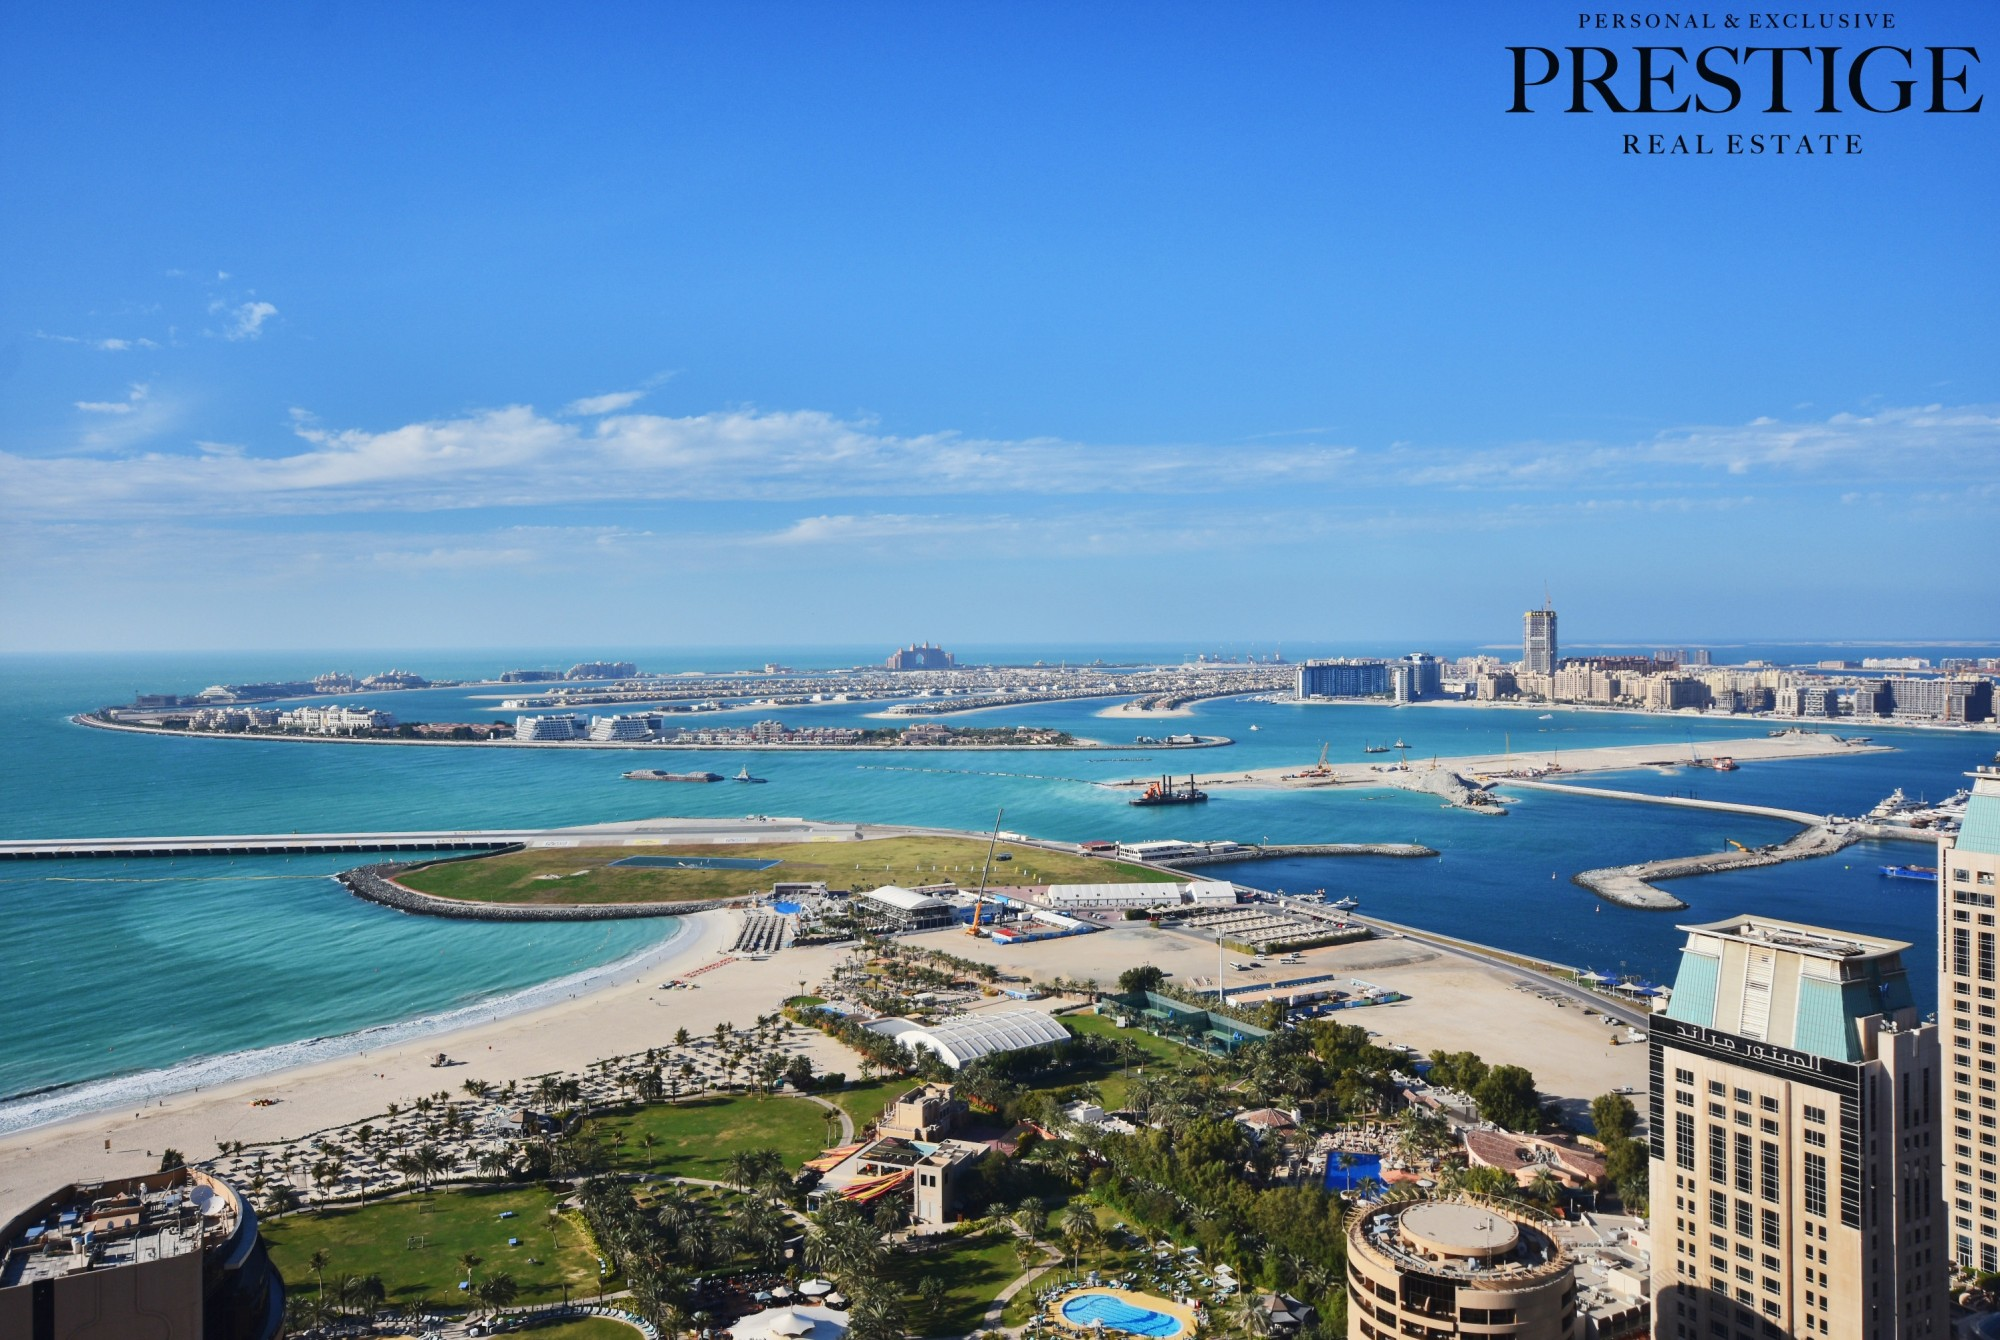 3 Bed |Sea View| Trident Grand Residence | 2 Parking